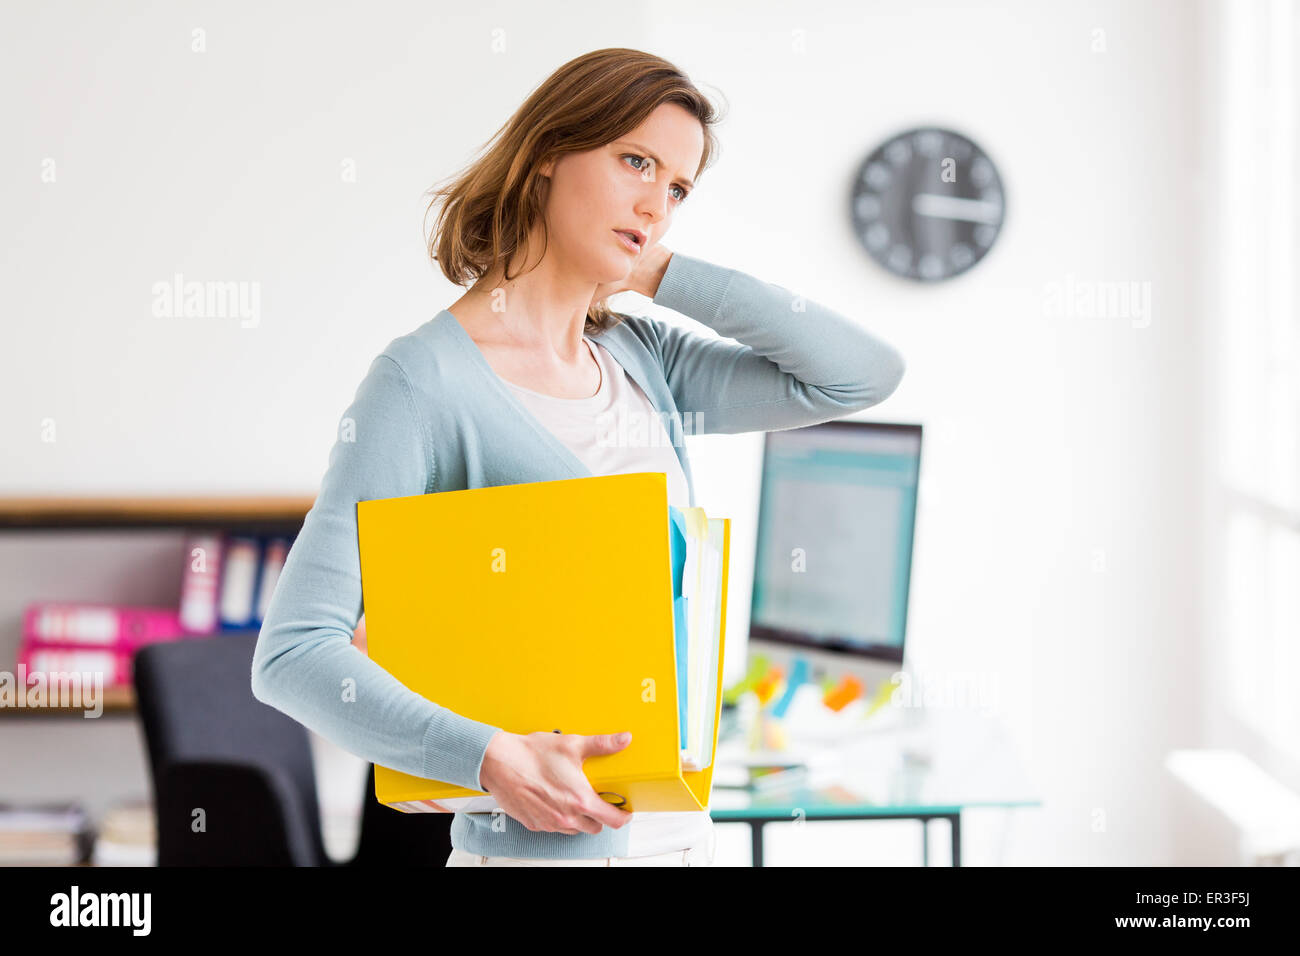 Woman suffering from neck pain in office. - Stock Image